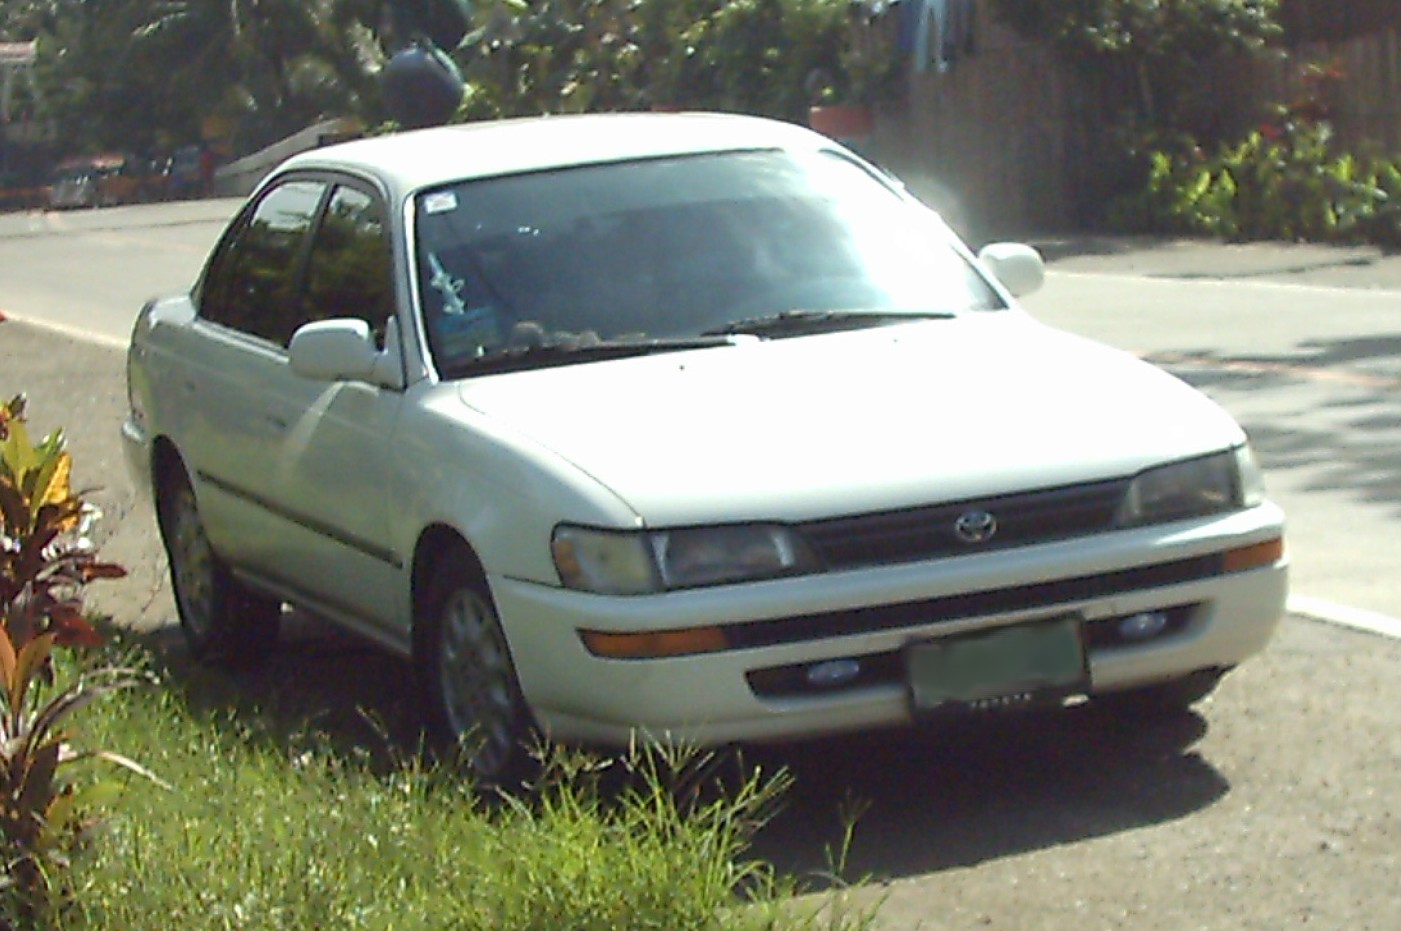 Toyota Corolla Wagon 1995 photo - 2